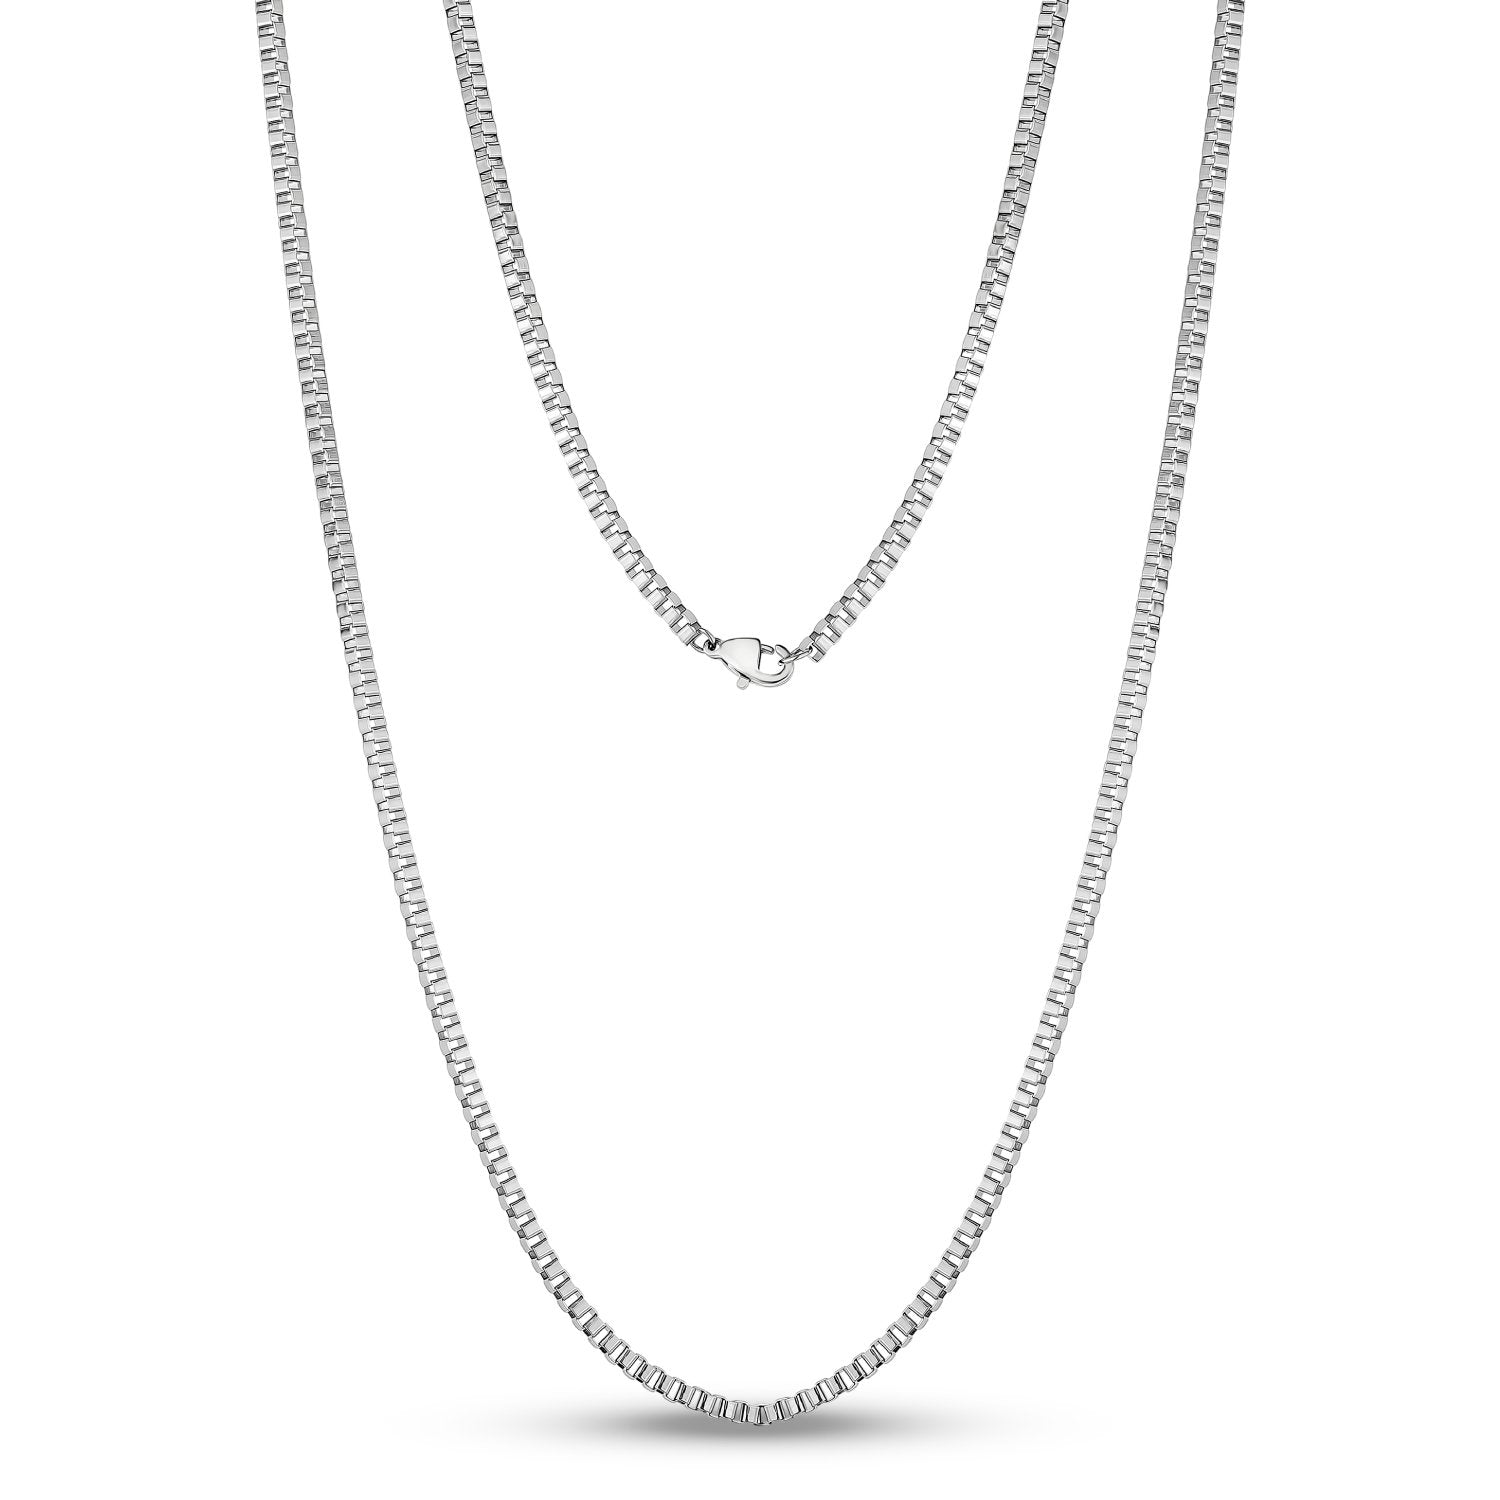 Unisex Necklaces - 2.5mm Thin Stainless Steel Box Link Necklace